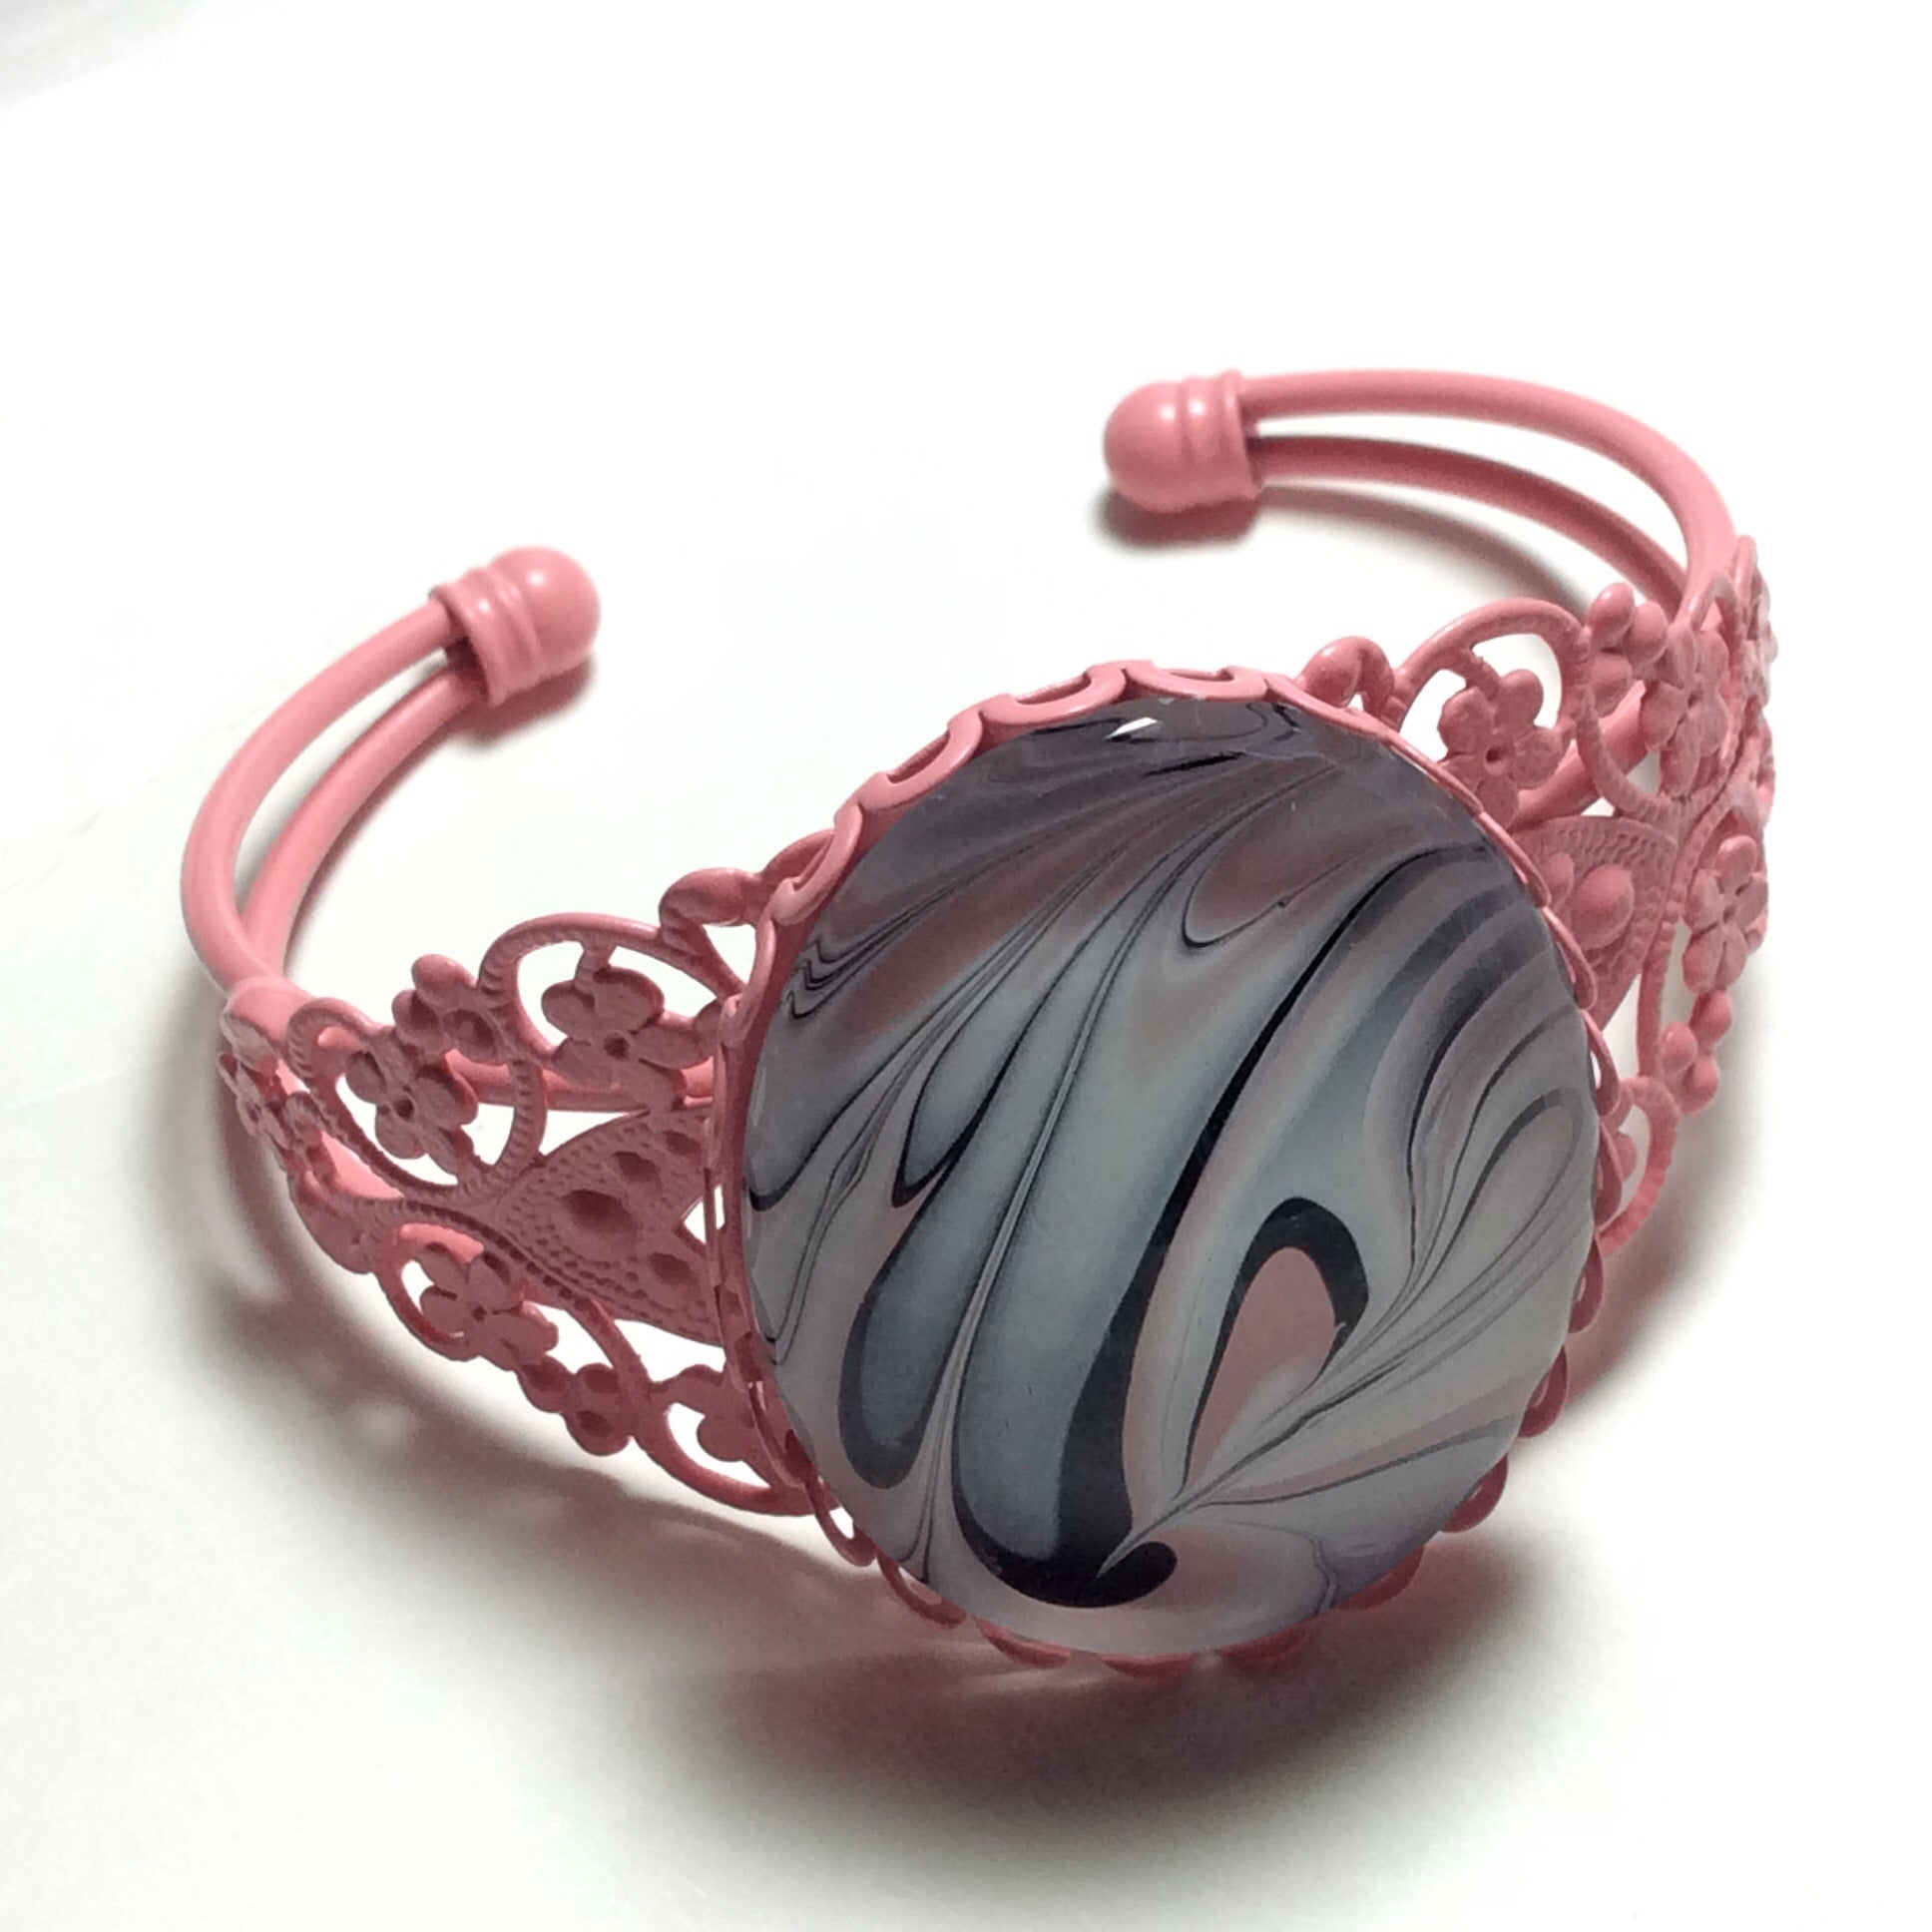 Bracelet, Swirls of Pink, White and Black